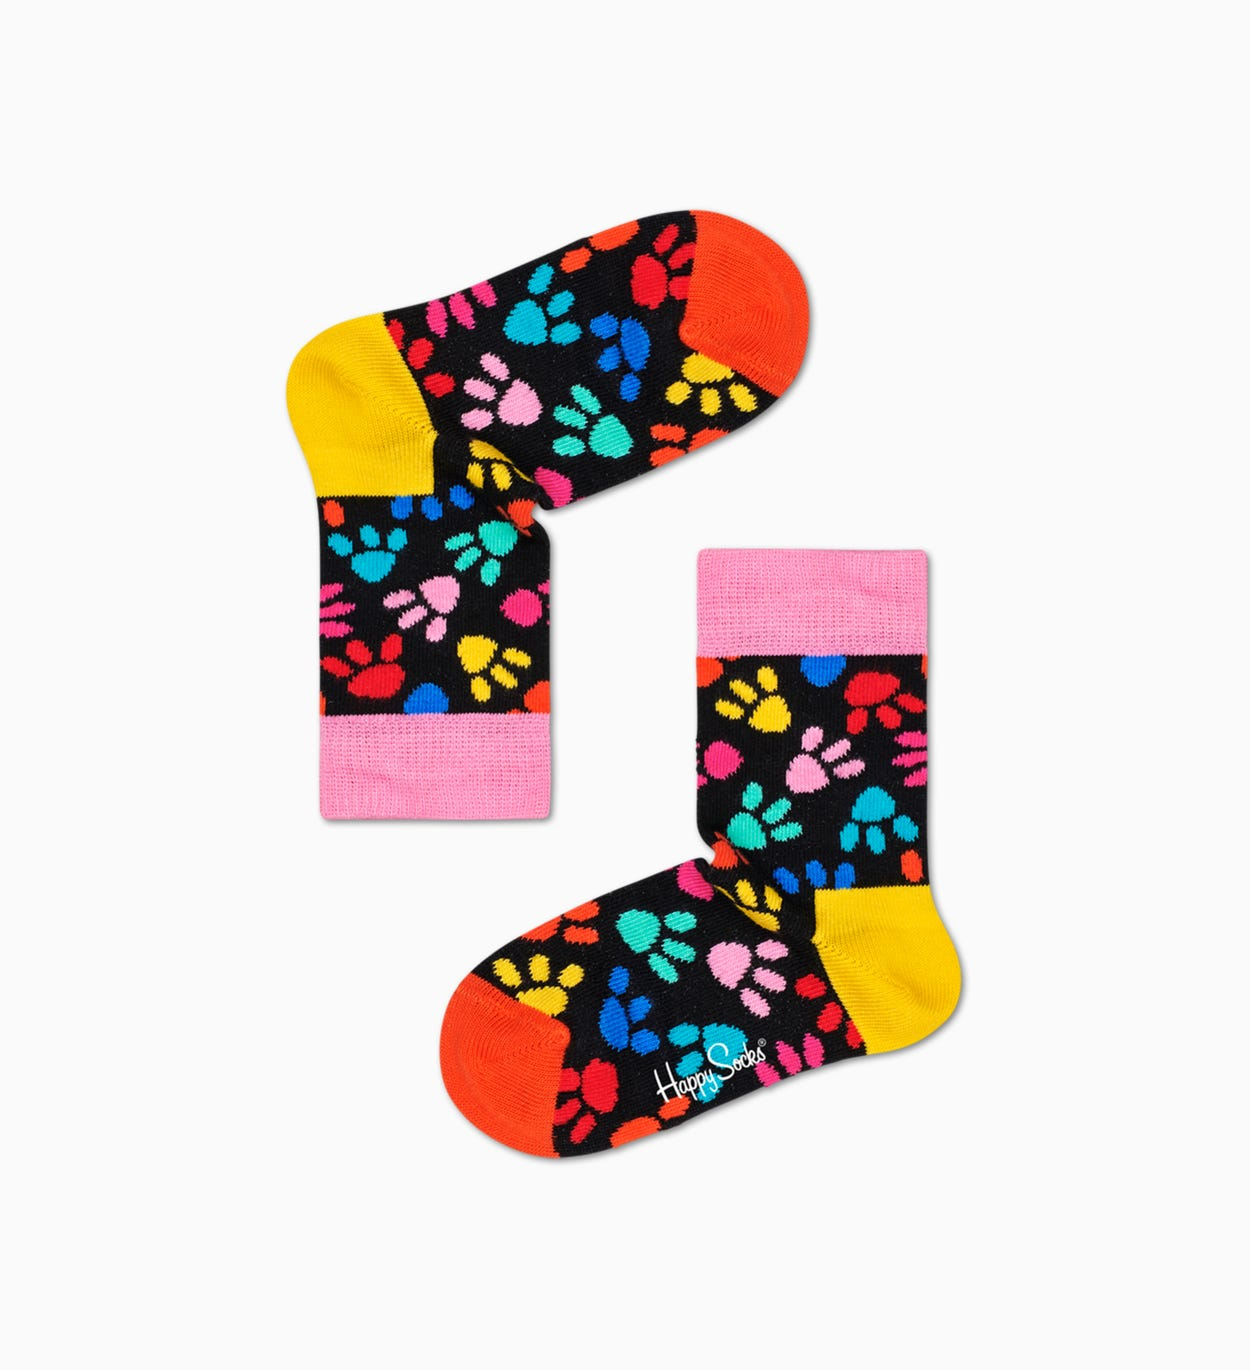 Happy Socks x Pink Panther: Kinder- und Babysocken